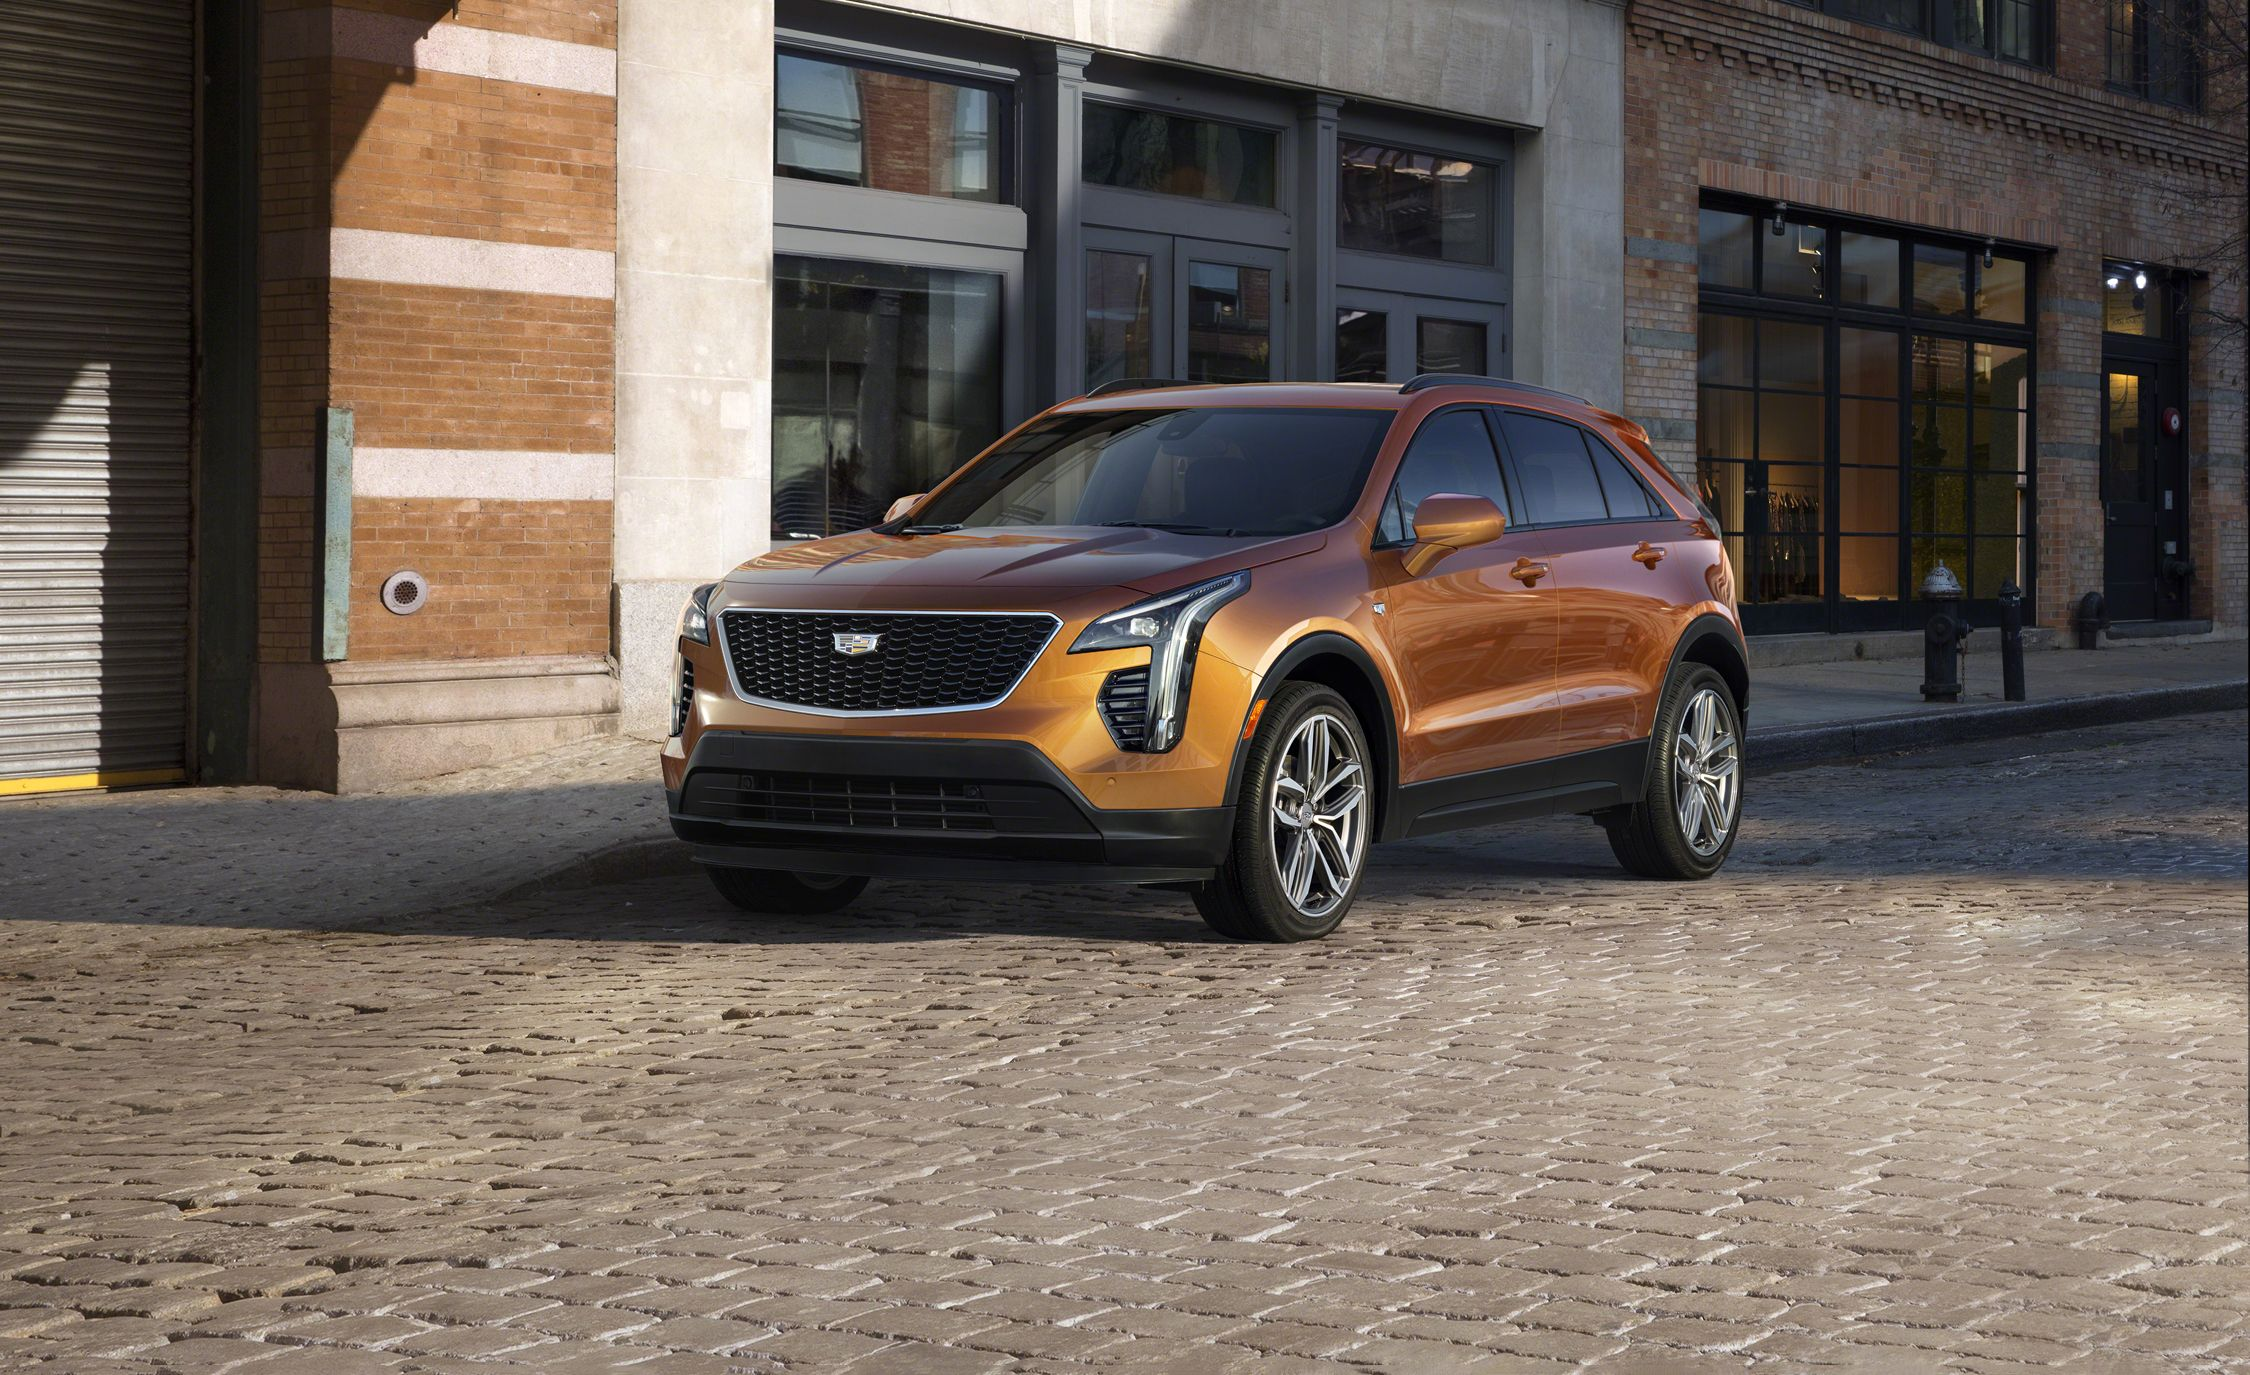 2019 Cadillac XT4: Finally, a Smaller Caddy Crossover